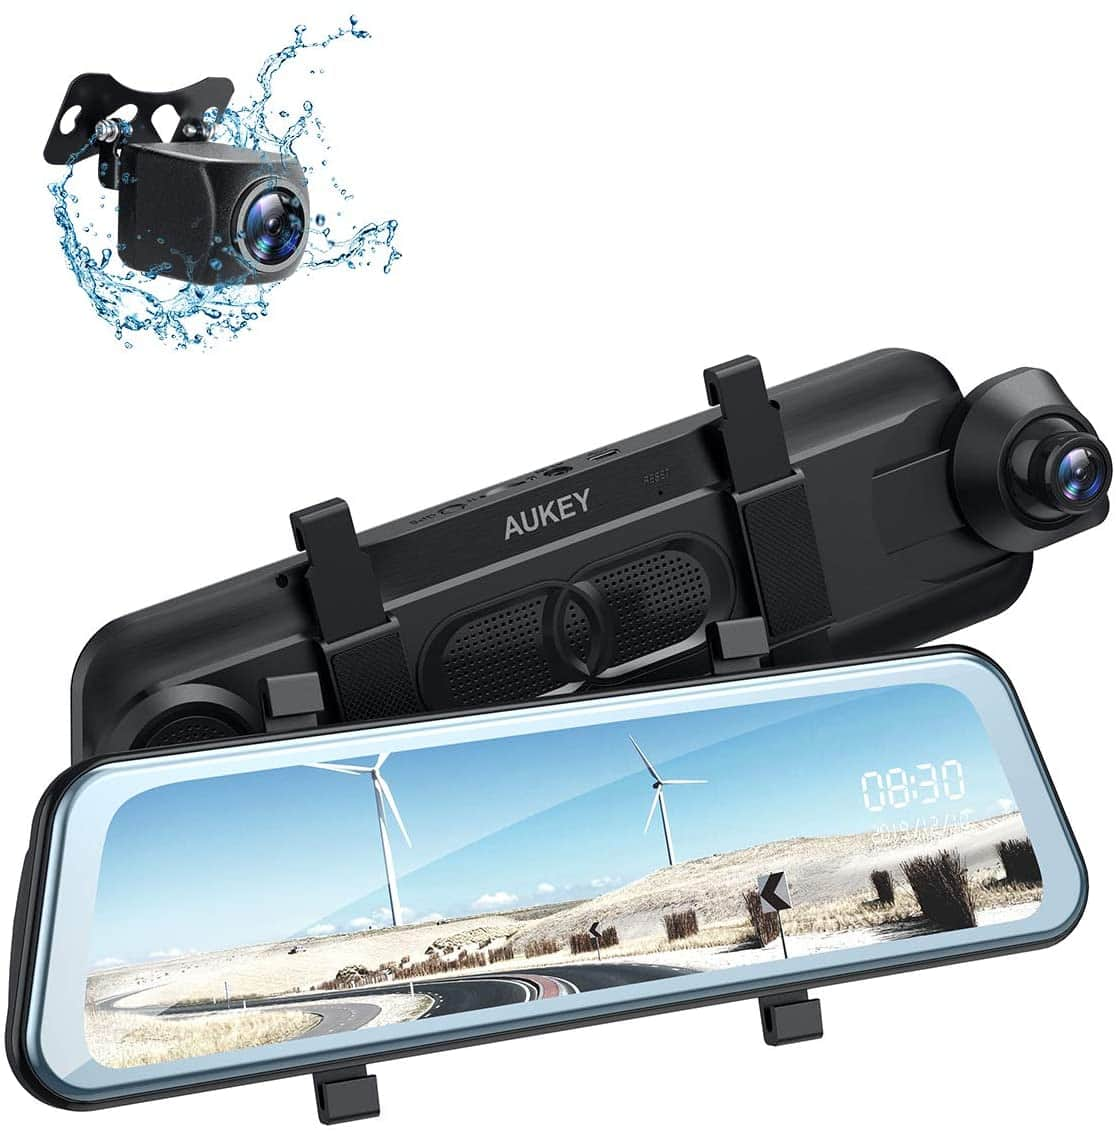 """AUKEY Backup Camera 9.66"""" IPS Touchscreen 1080p Dual Mirror Dash Cam & More $70 + free s/h"""